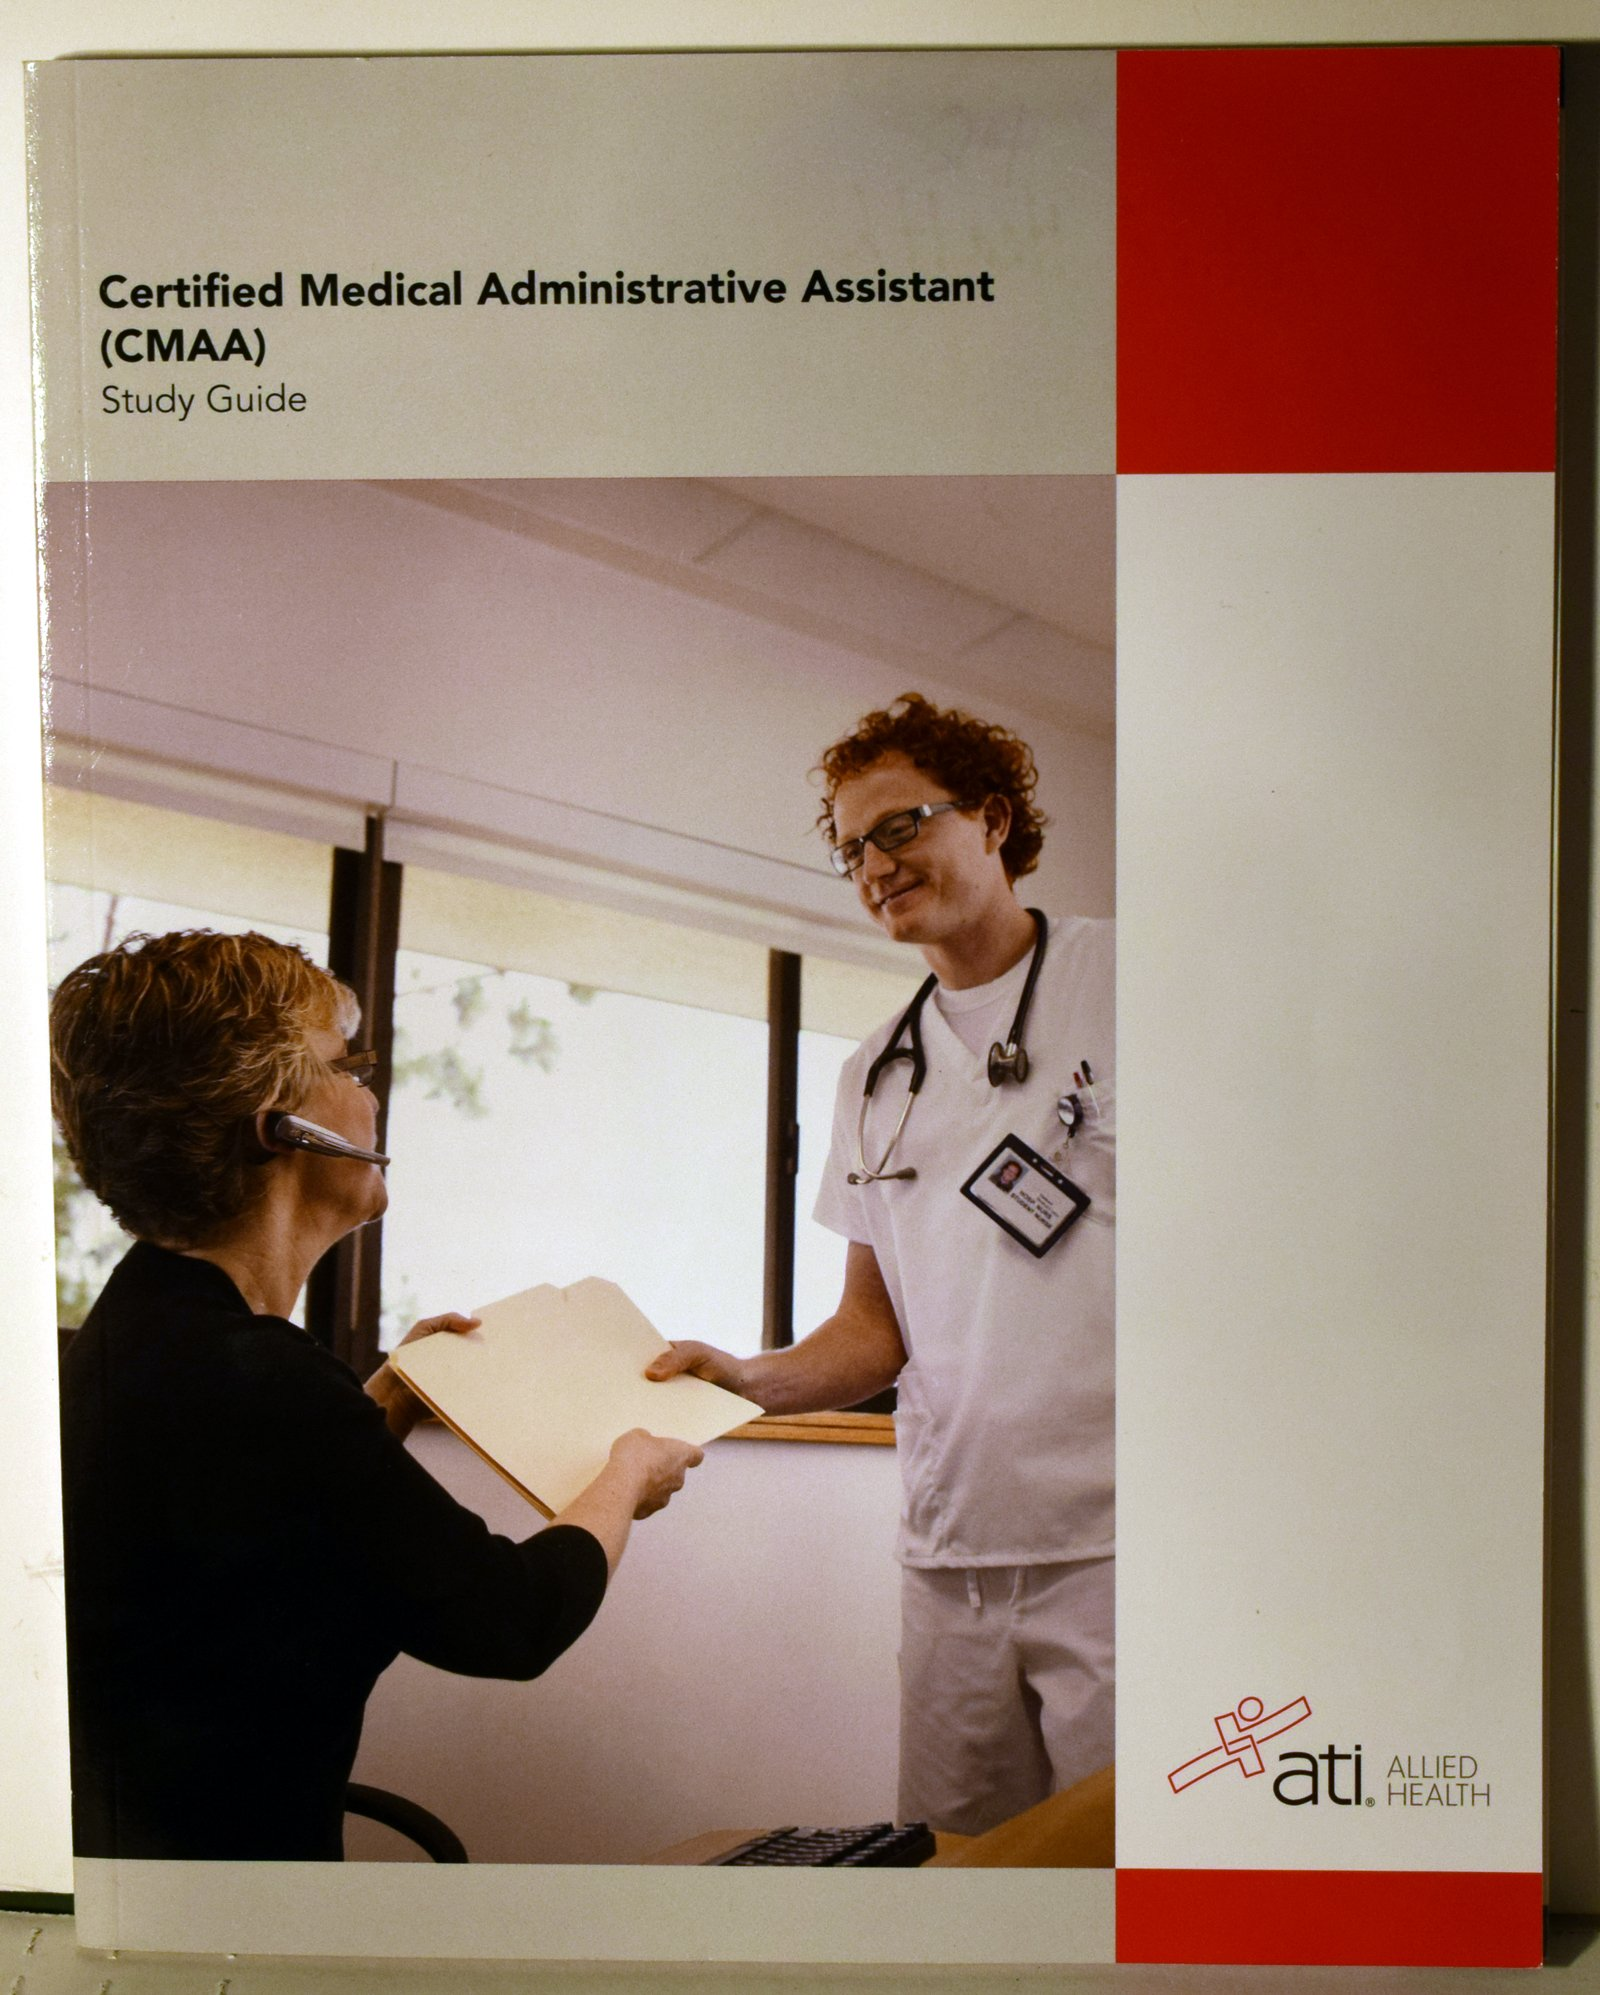 Certified Medical Administrative Assistant Cmaa Study Guide Ati